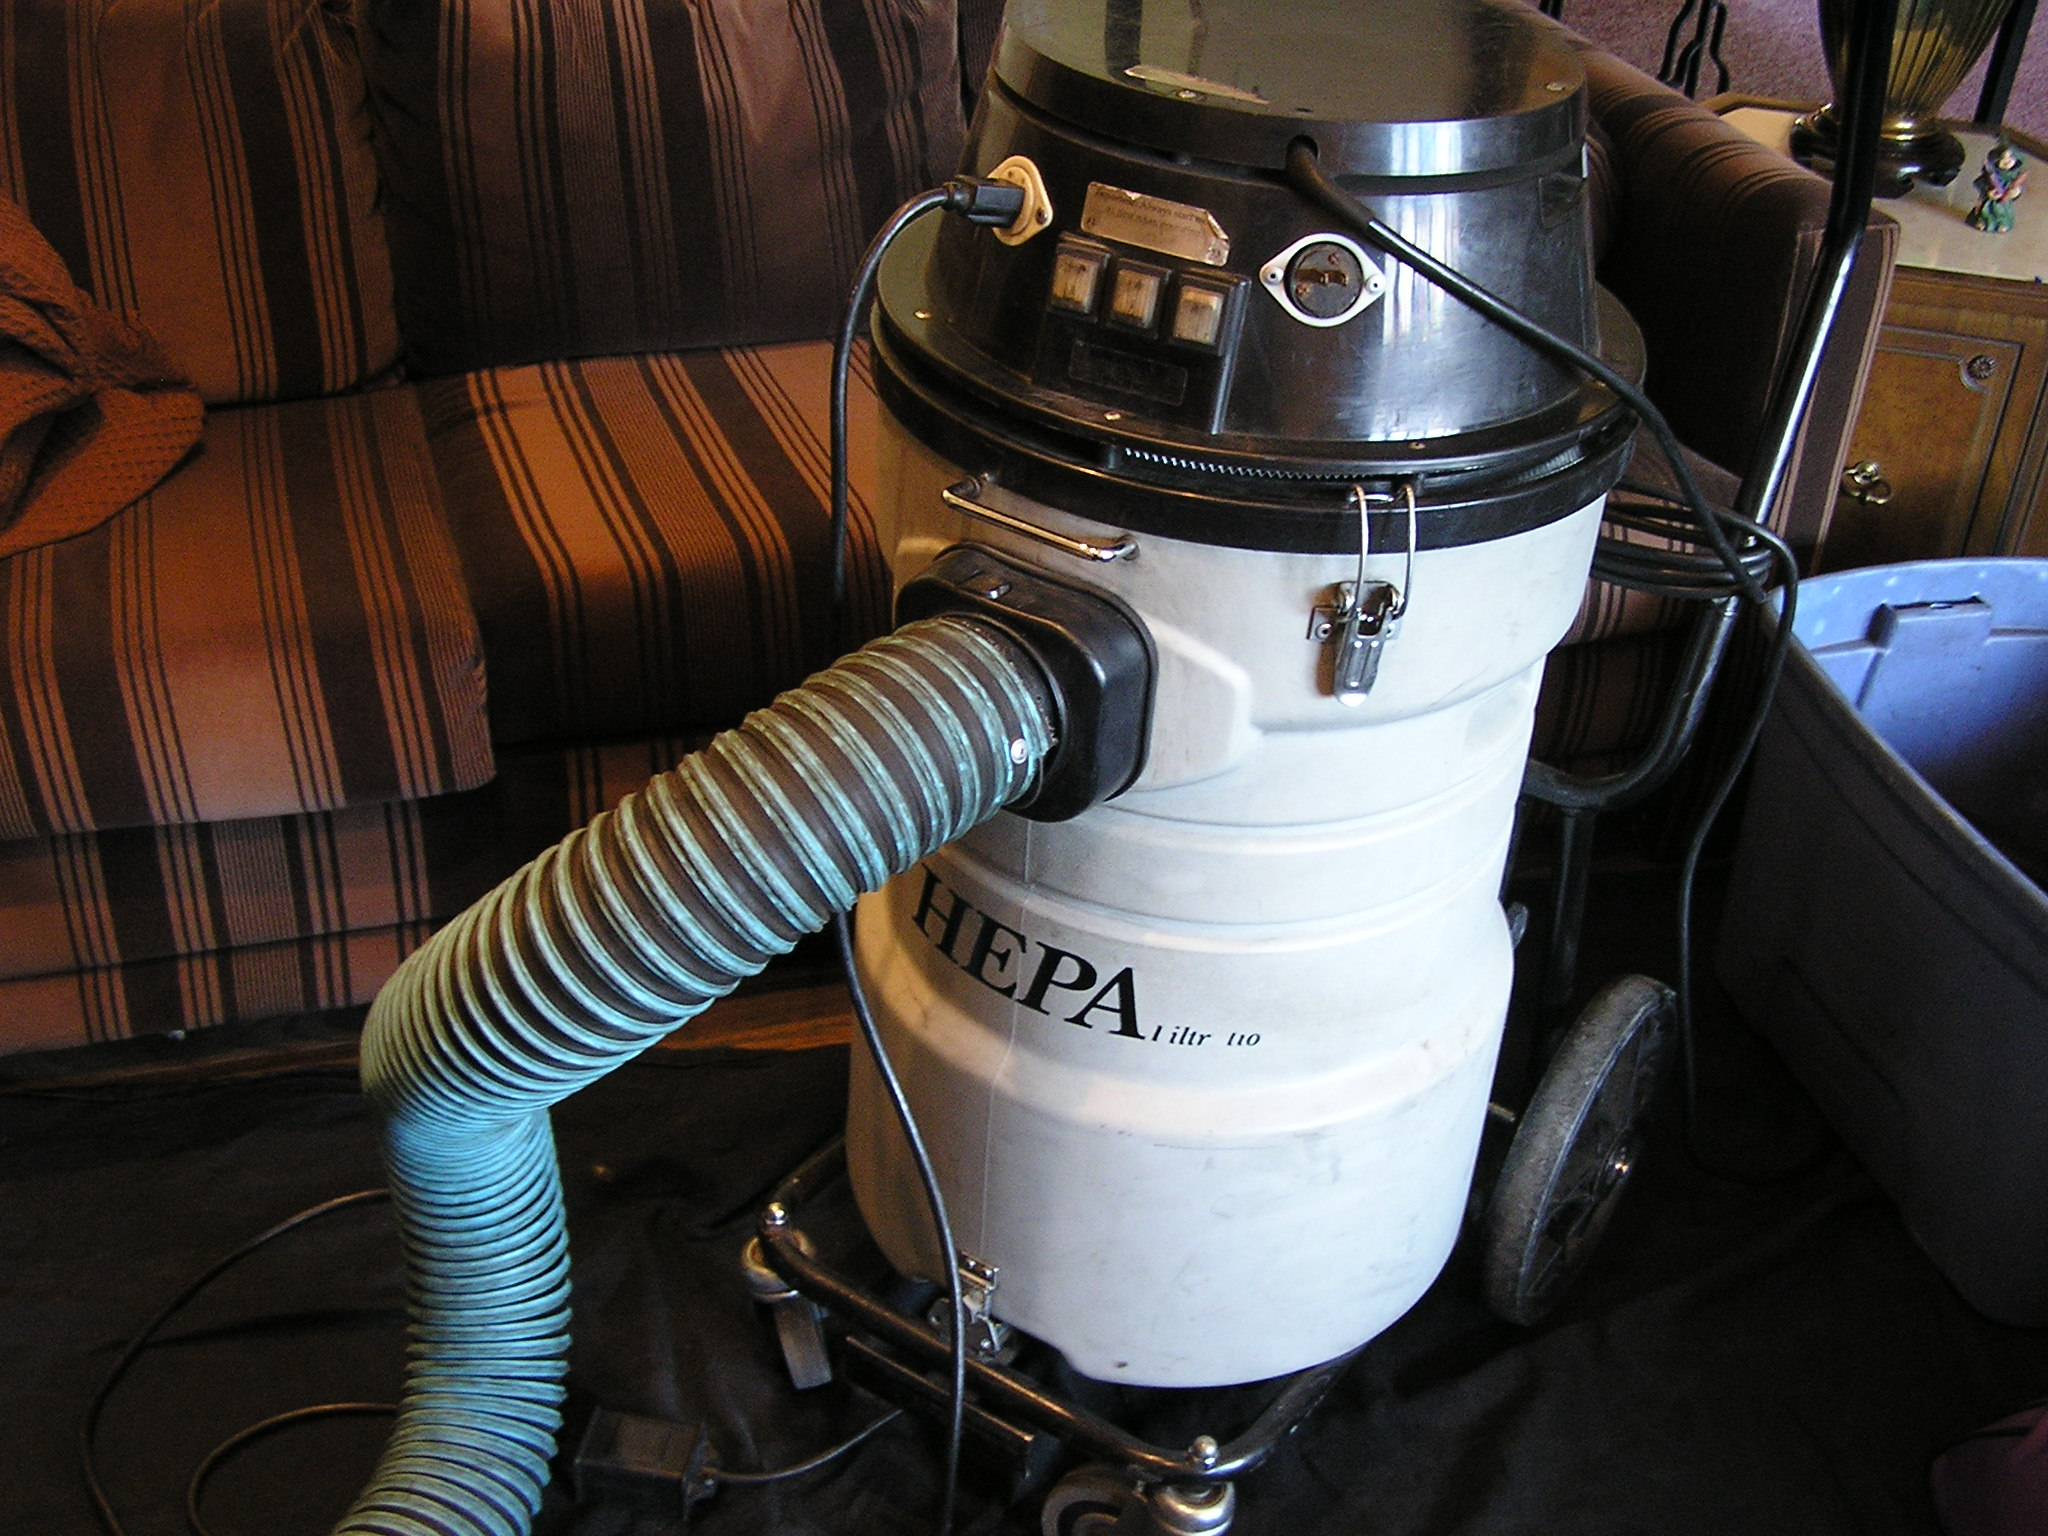 Hepa filer vacuum used during the sweeping process.  Equipped with three speed variable motor to enable us to collect all debris during the cleaning process.